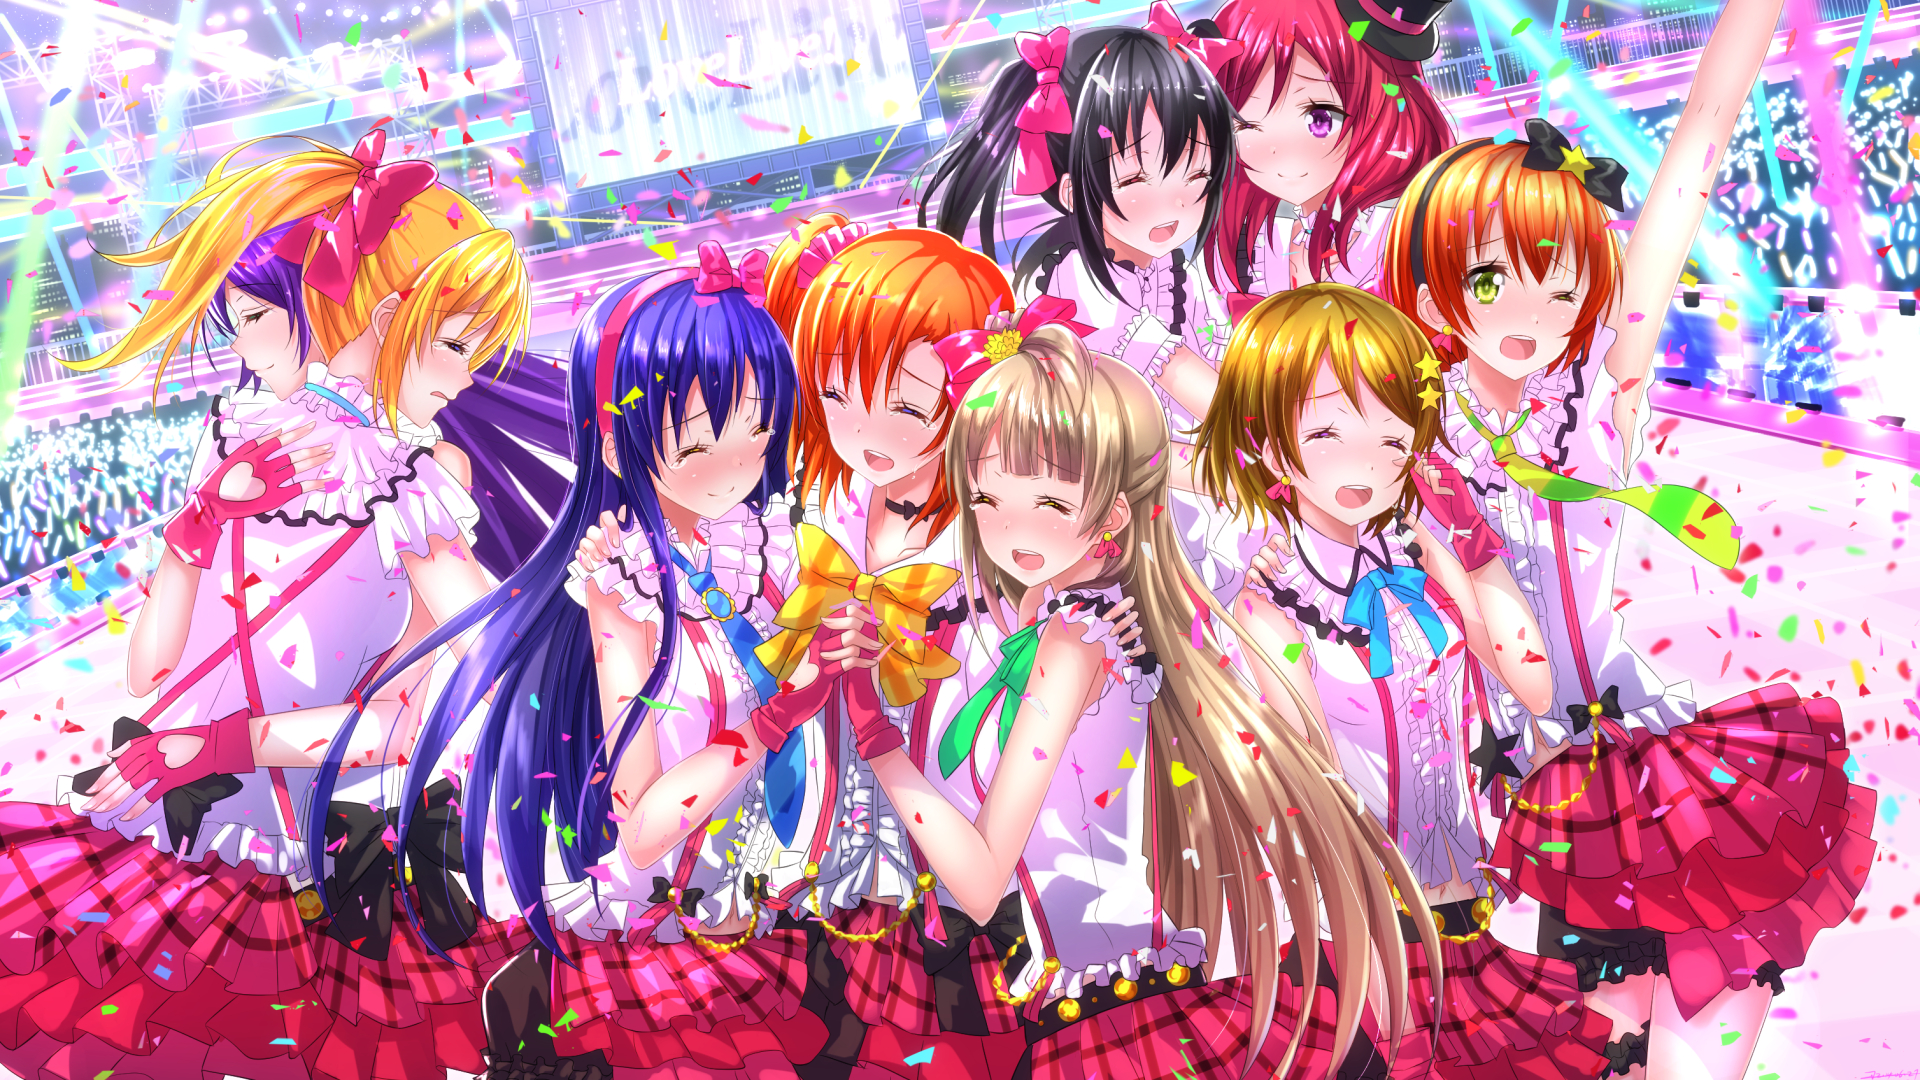 Love Live Wallpaper Hd For Pc : ? s - Love Live! - HD Wallpaper #1735982 - Zerochan Anime ...